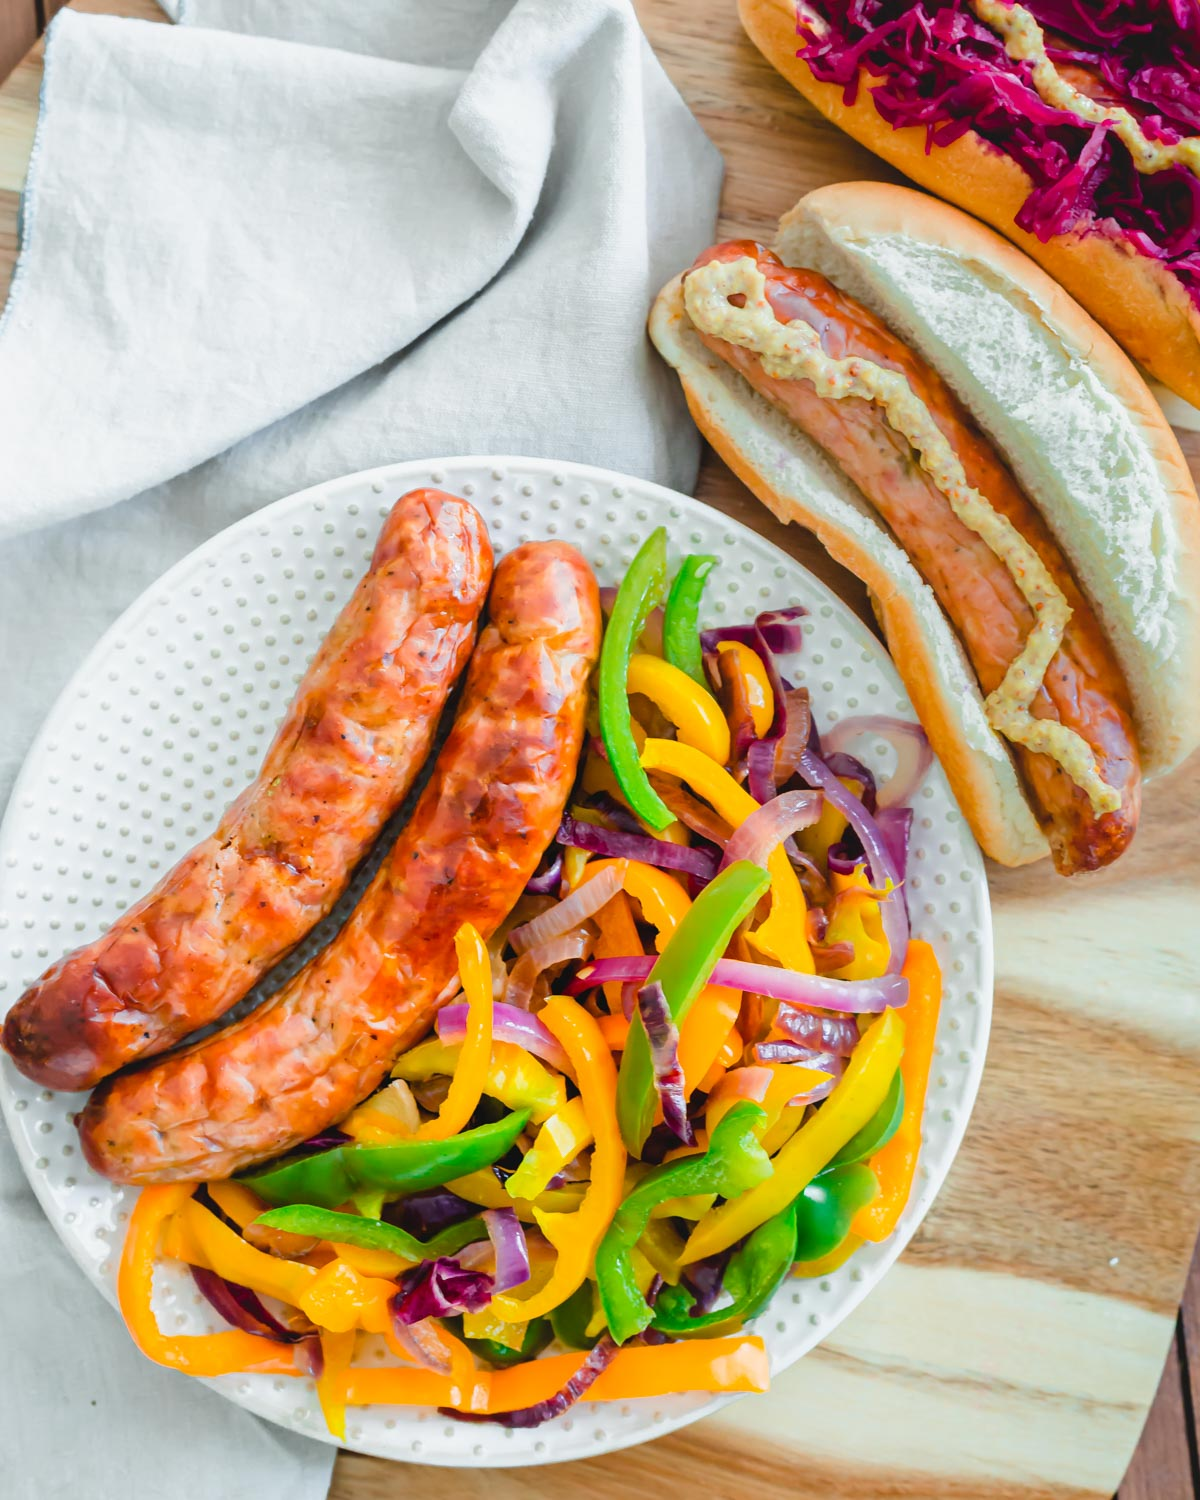 Serve air fried brats with sautéed peppers and onions.